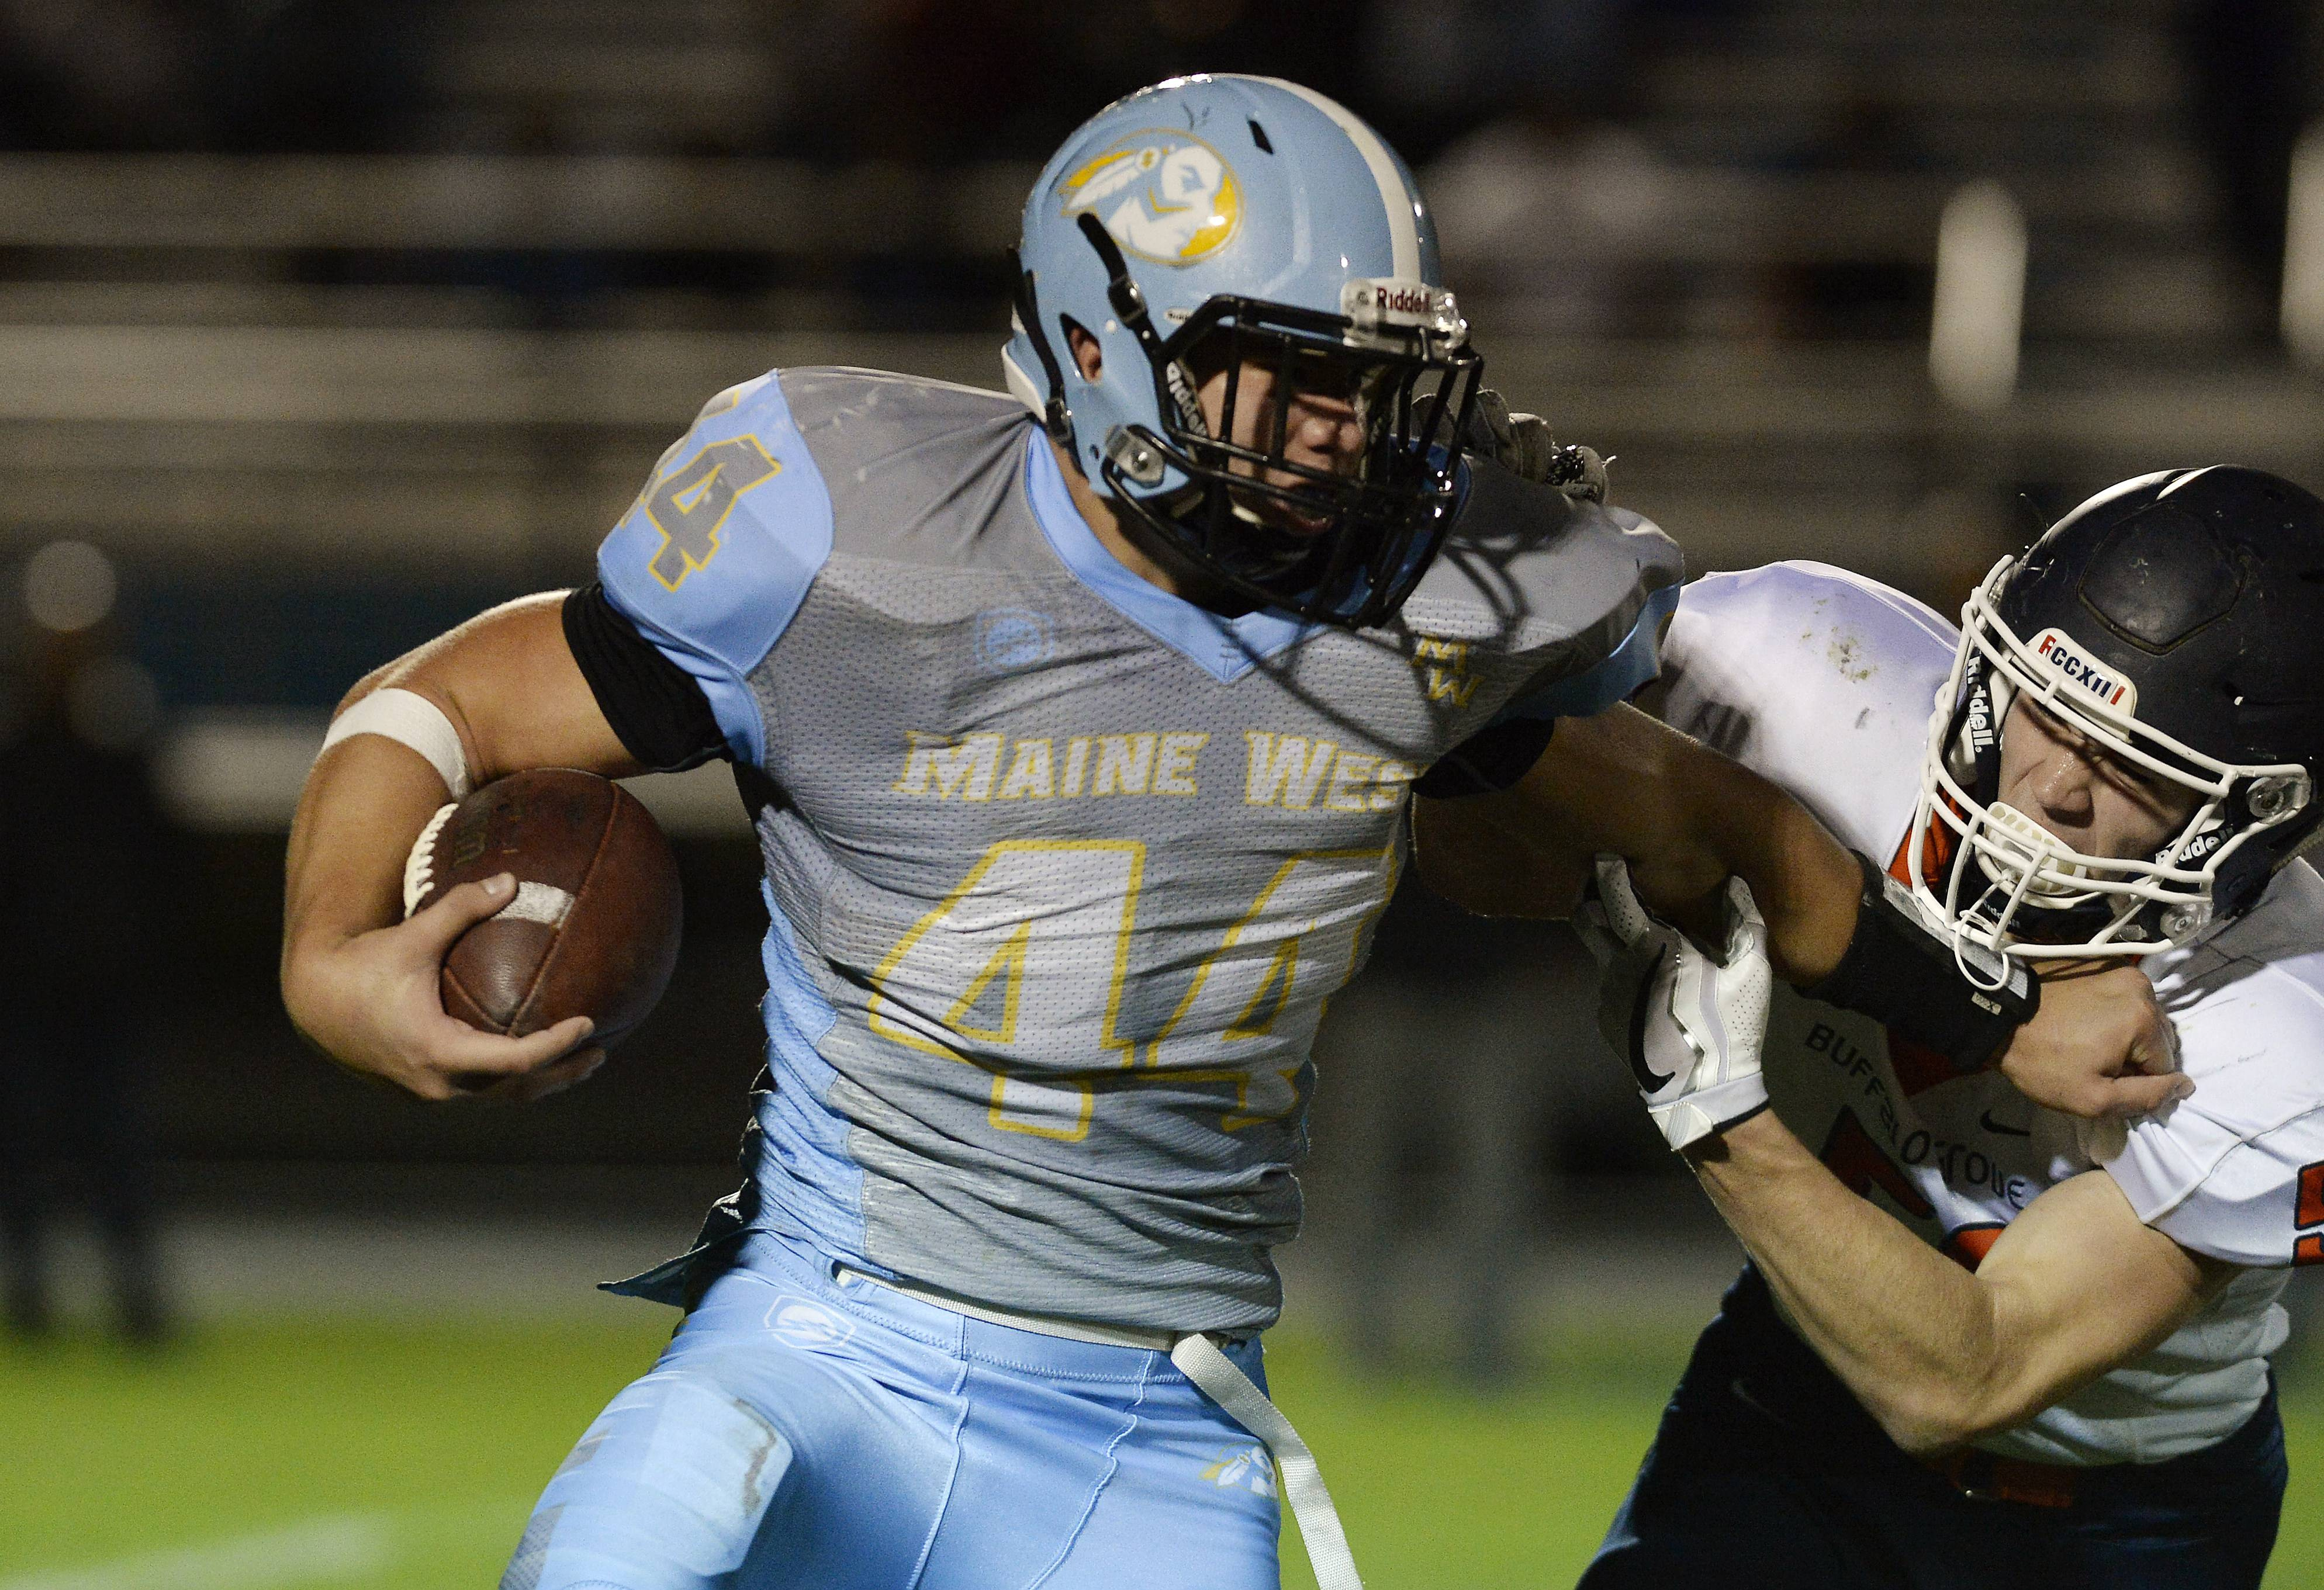 Buffalo Grove's Andrew Polk brings down Maine West's Jake Bellizzi on Friday in Des Plaines.